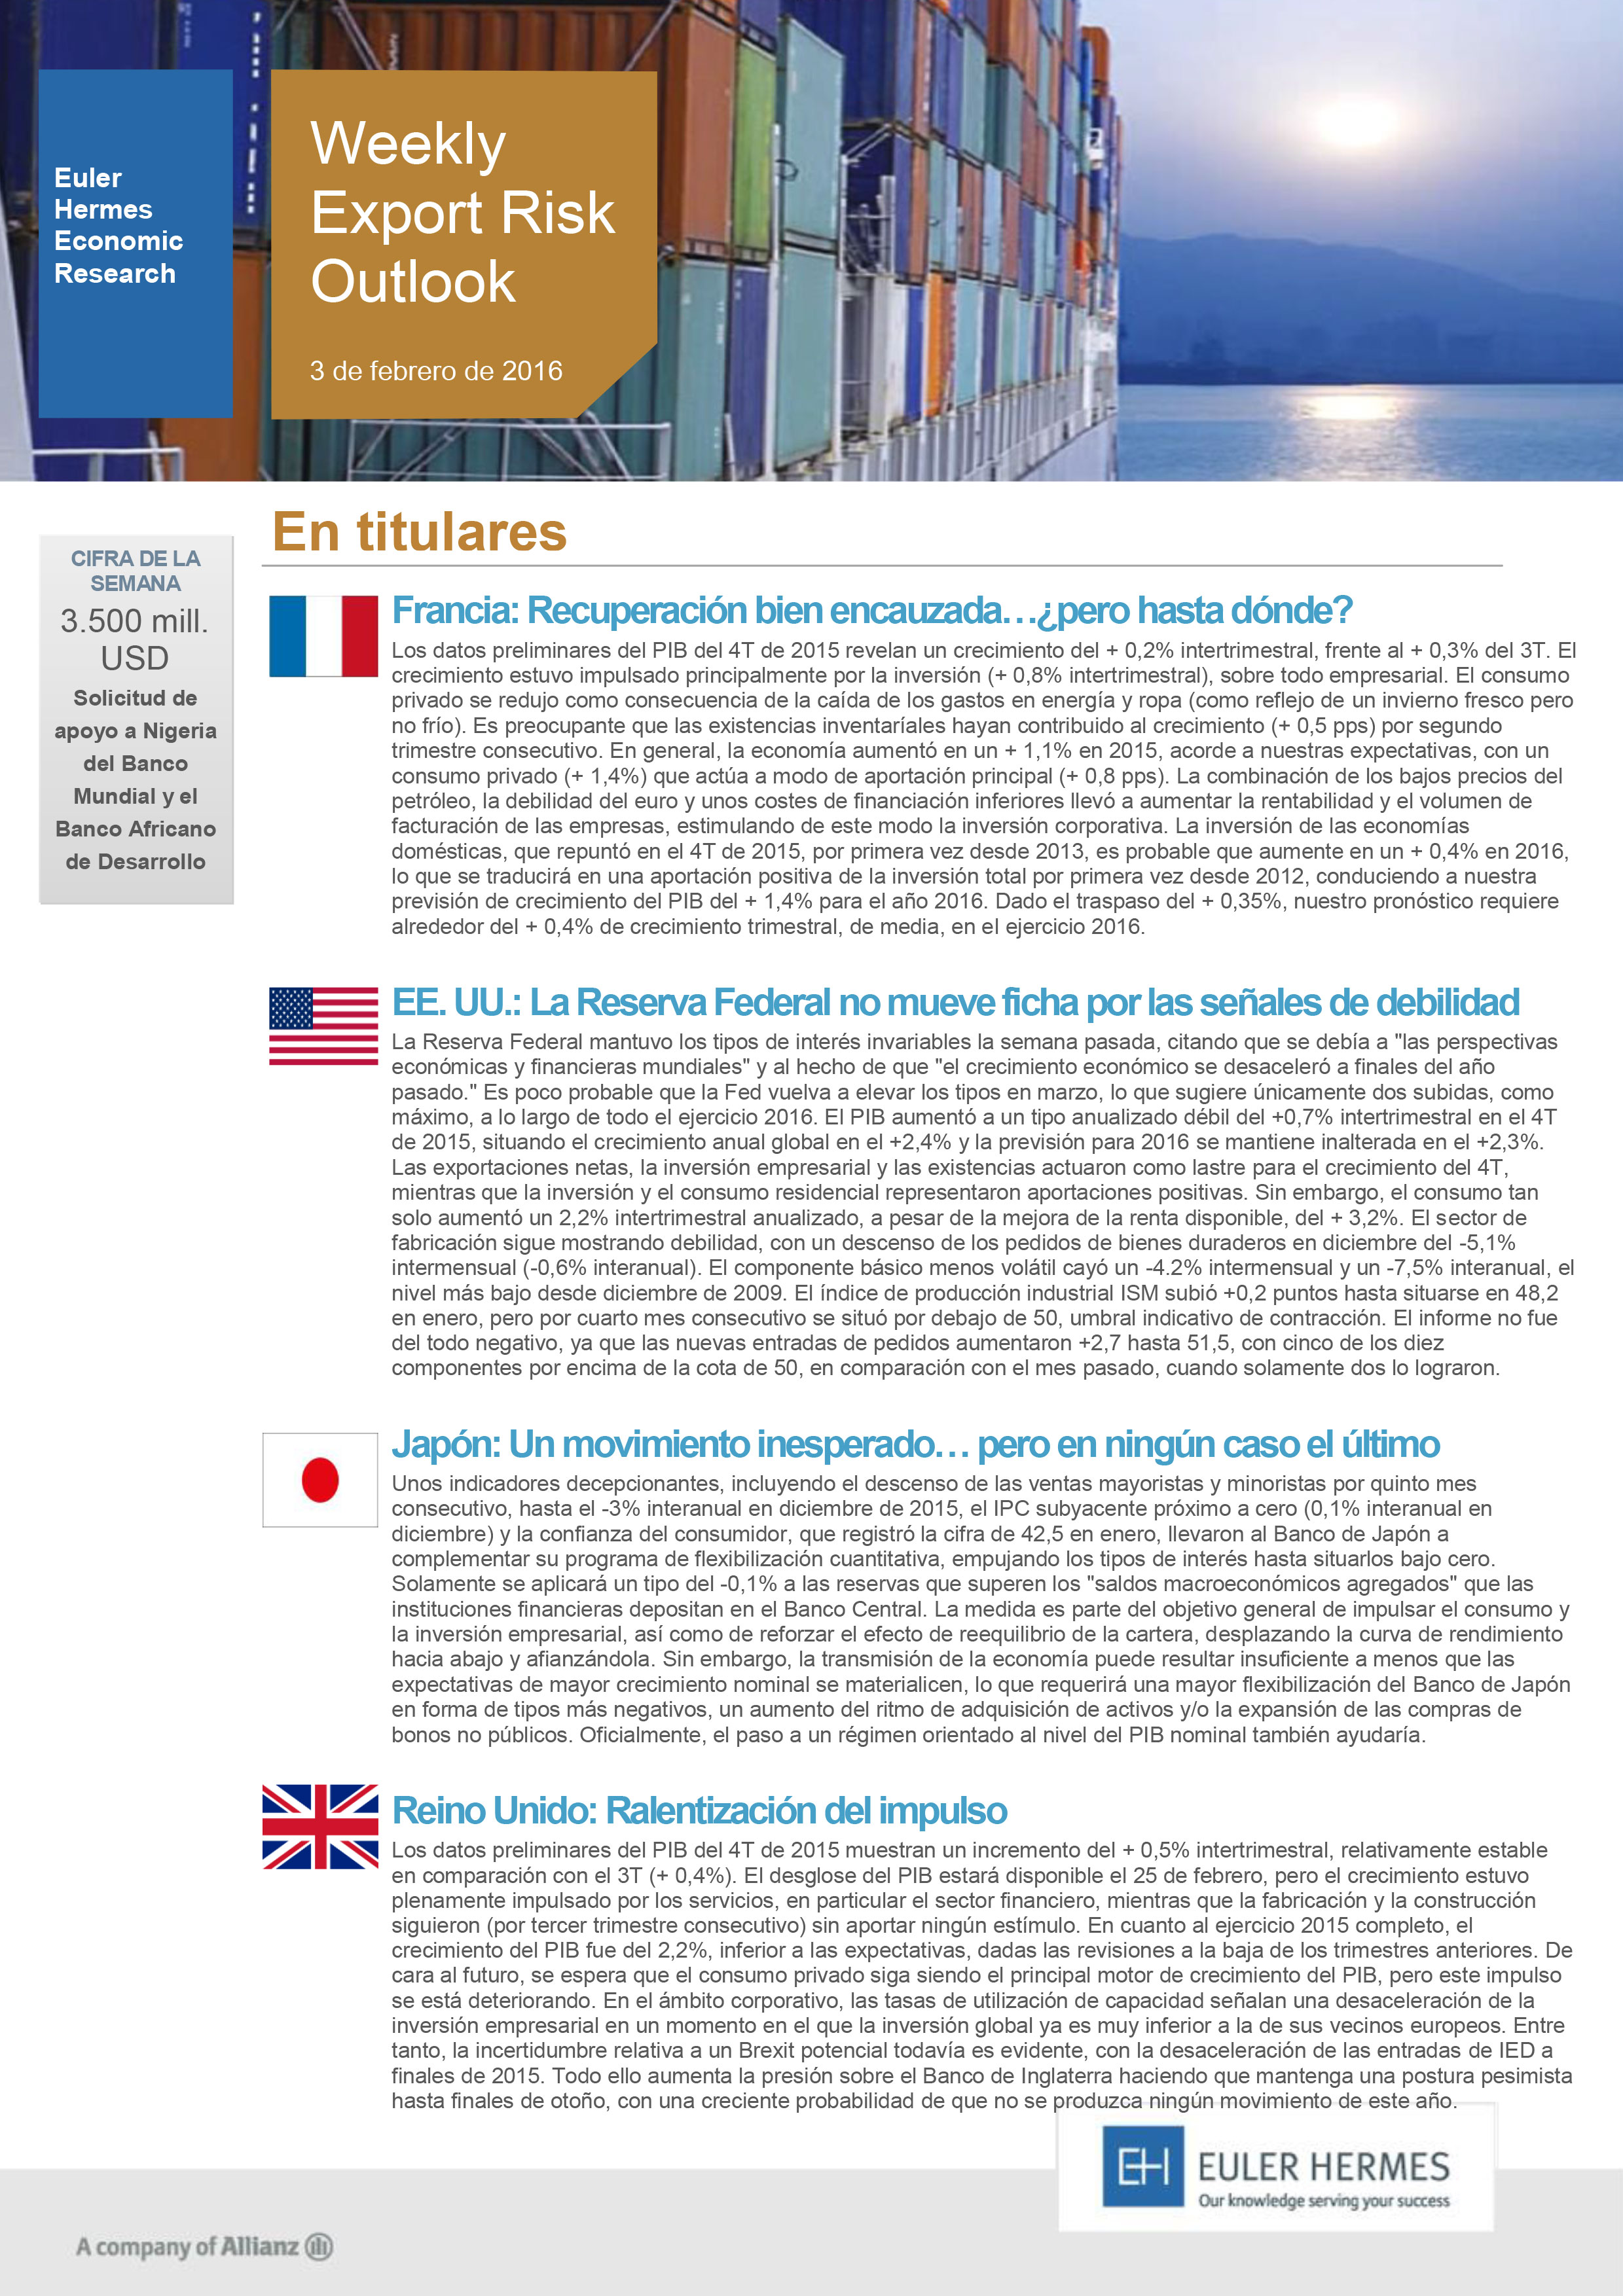 Weekly-Export-Risk-Outlook-No-4-(03-February-2016)-ES-1